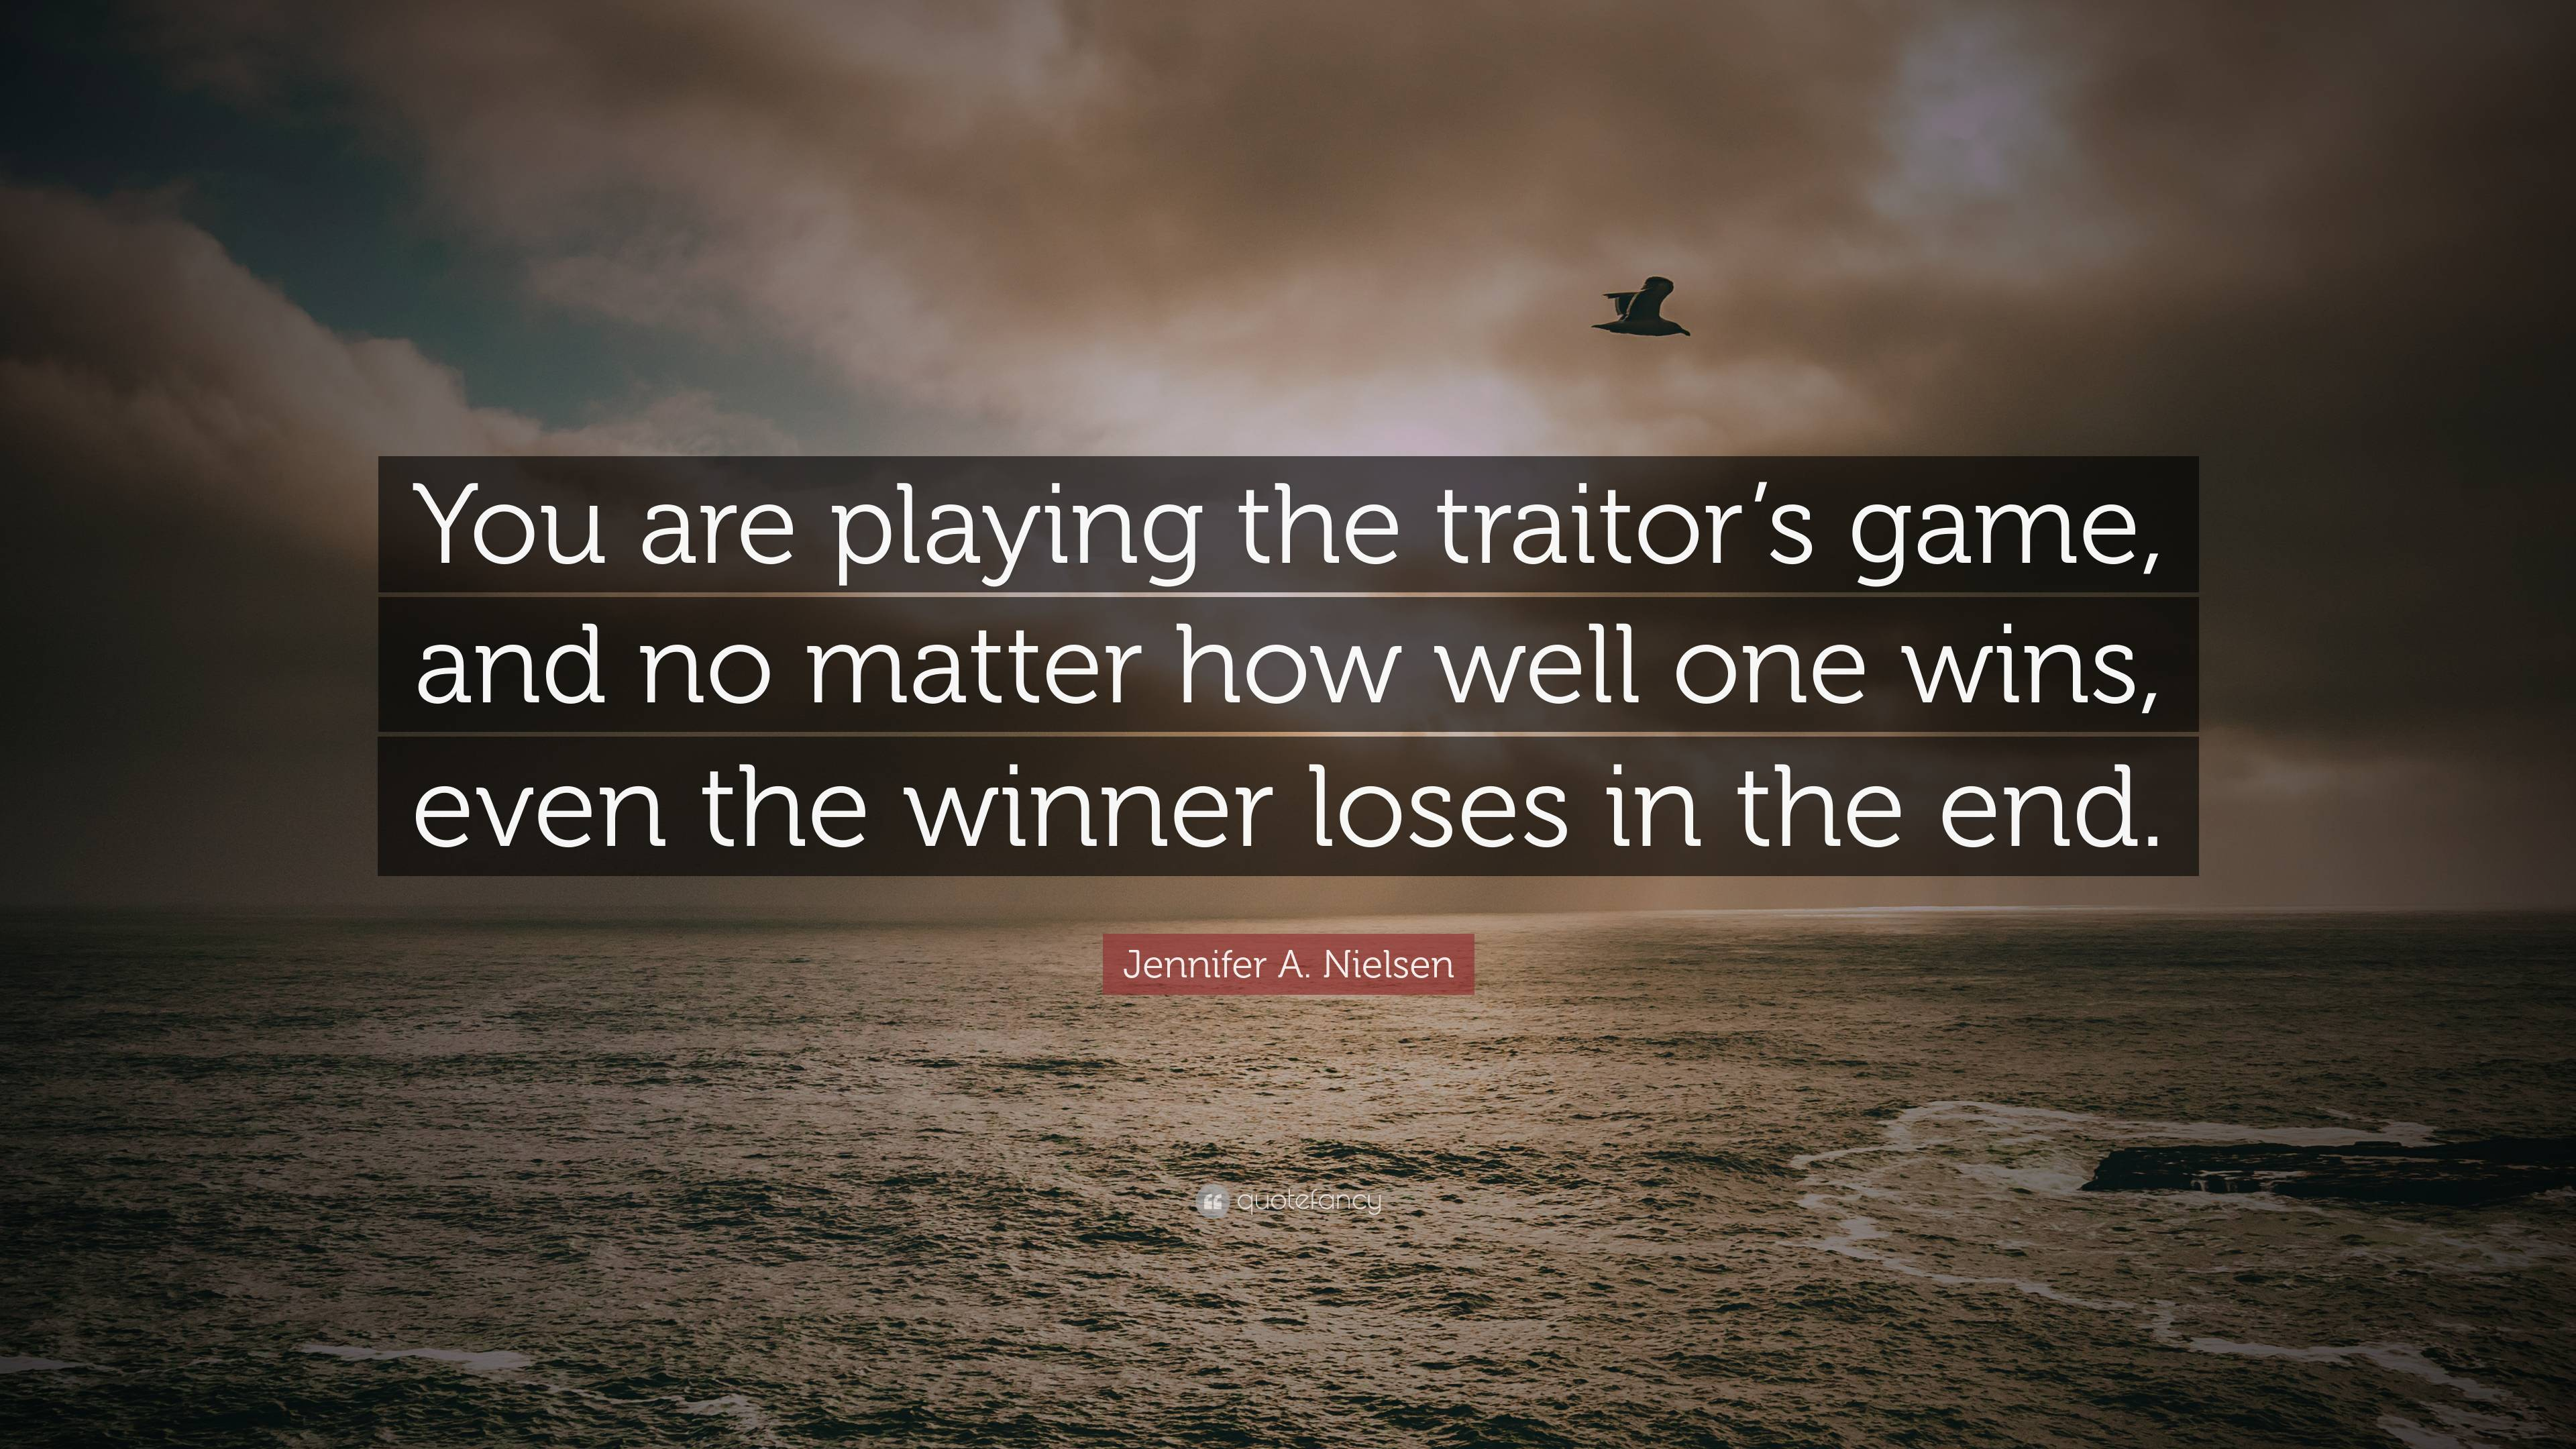 """Jennifer A. Nielsen Quote: """"You are playing the traitor's game, and no  matter how well one wins, even the winner loses in the end."""" (2 wallpapers)  - Quotefancy"""